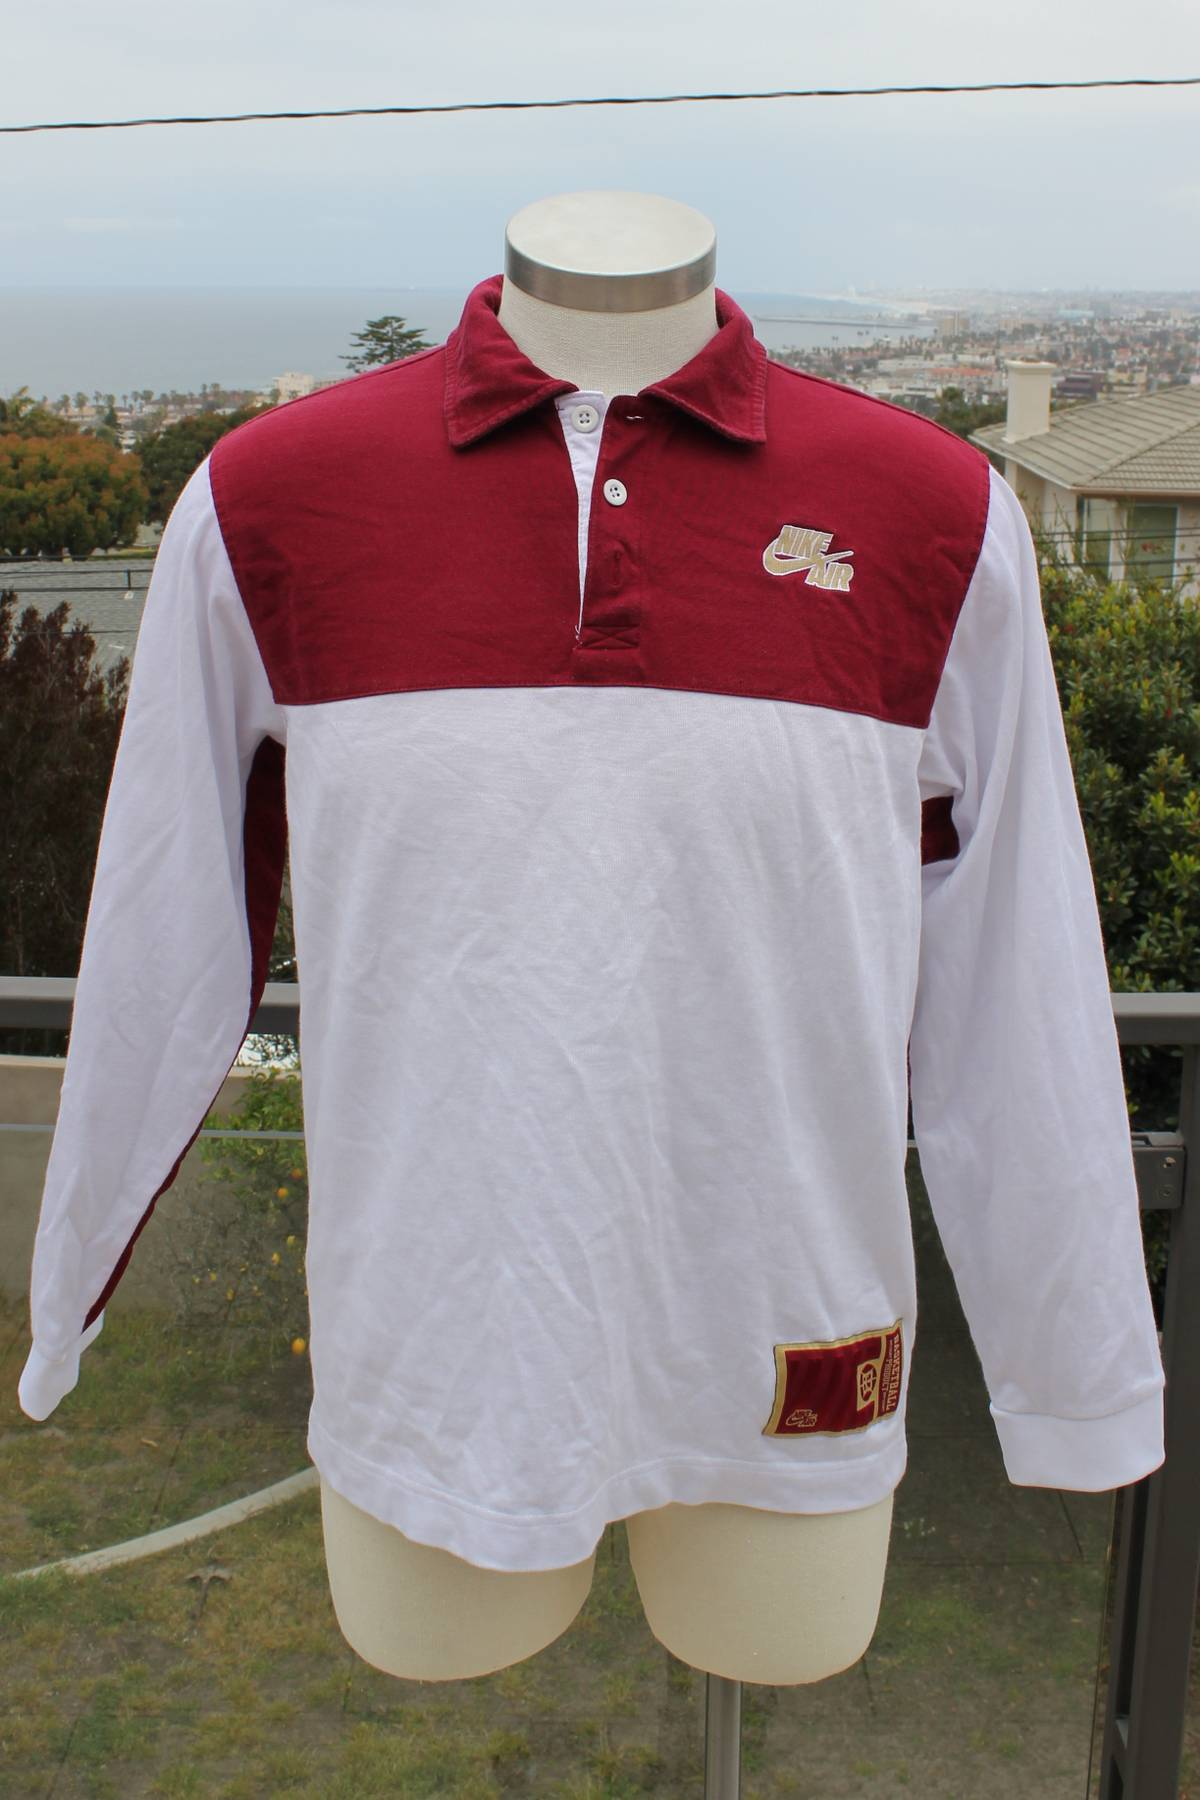 Nike Nike Air Basketball White Redgold Rugby Style Polo Long Sleeve